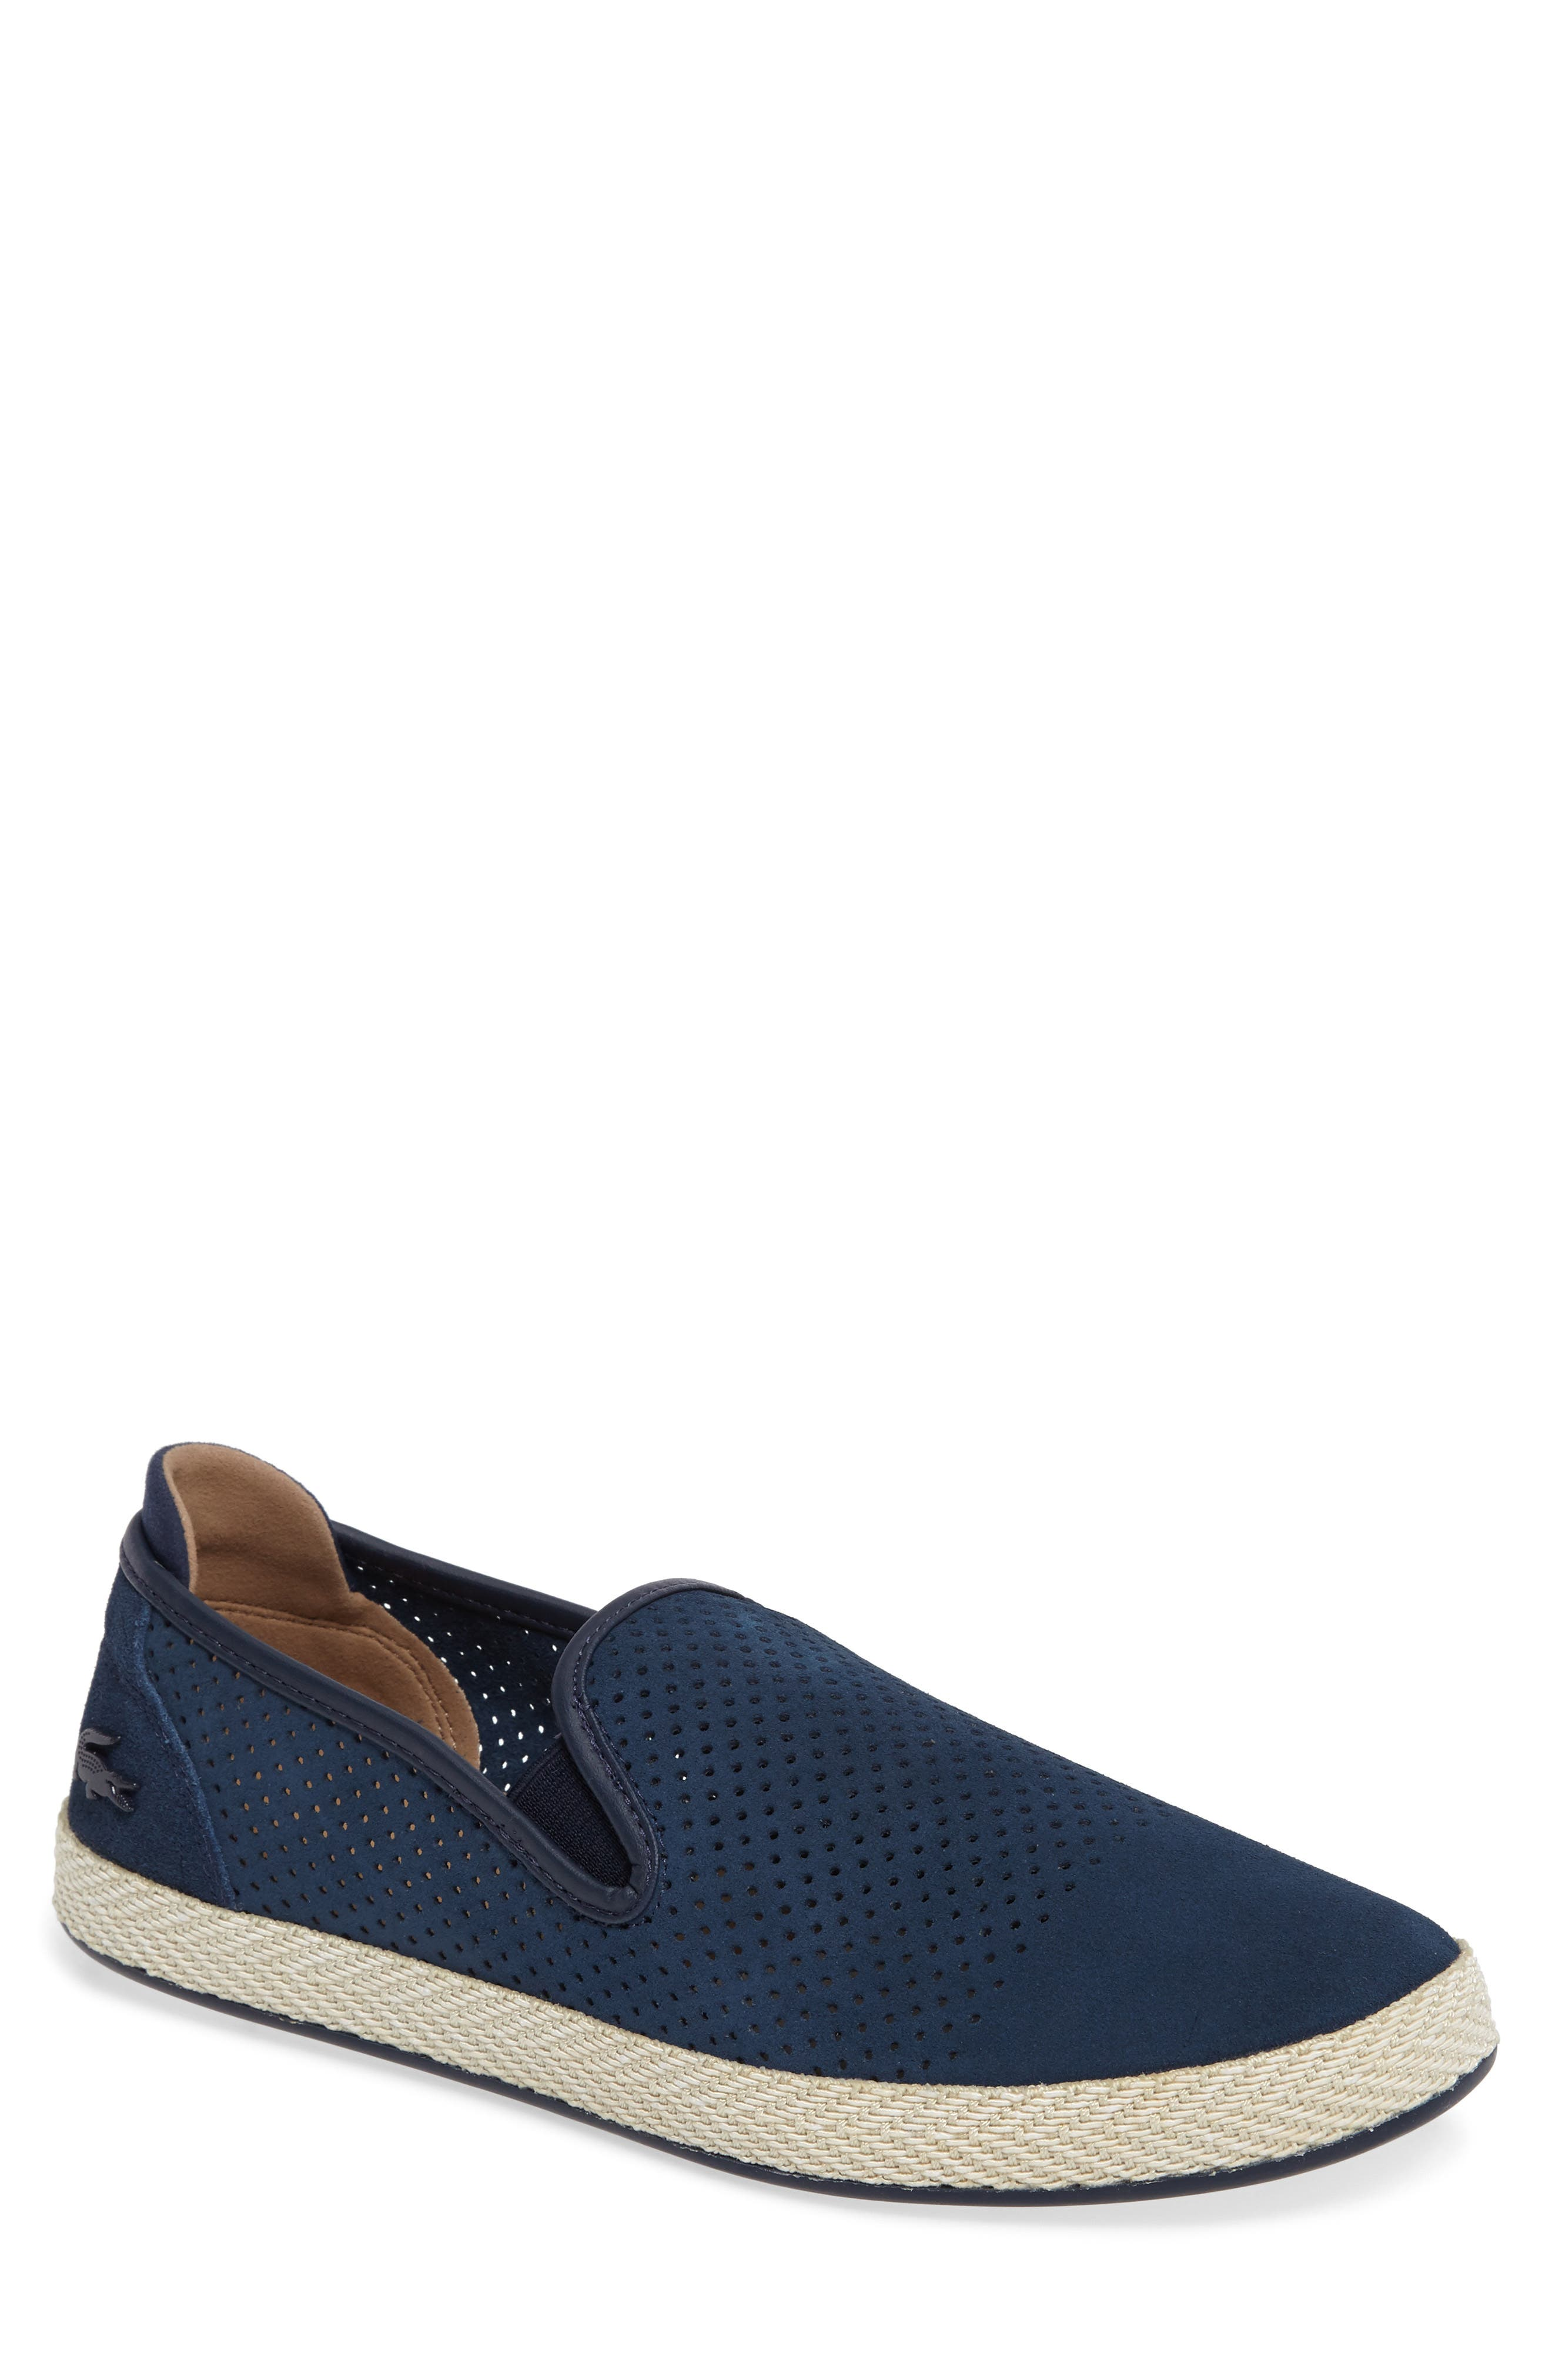 Main Image - Lacoste Tombre Slip-On (Men)